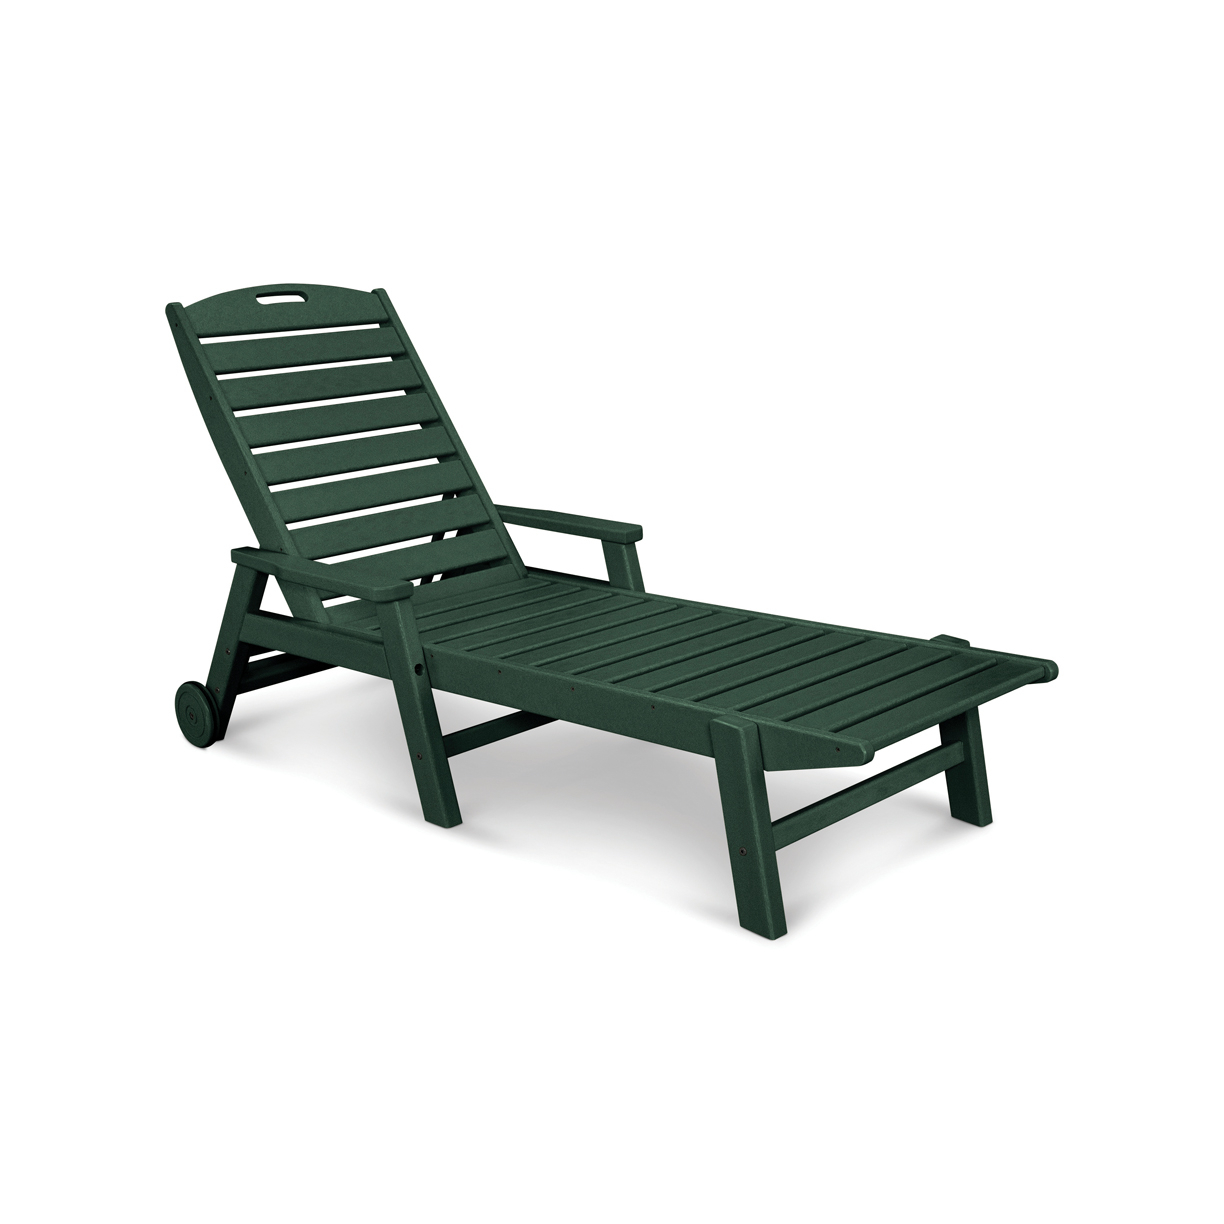 Widely Used Polywood Nautical Recycled Plastic Folding Chaise Lounge With Arms And Wheels For Plastic Chaise Lounges W/ Wheels (Gallery 6 of 25)